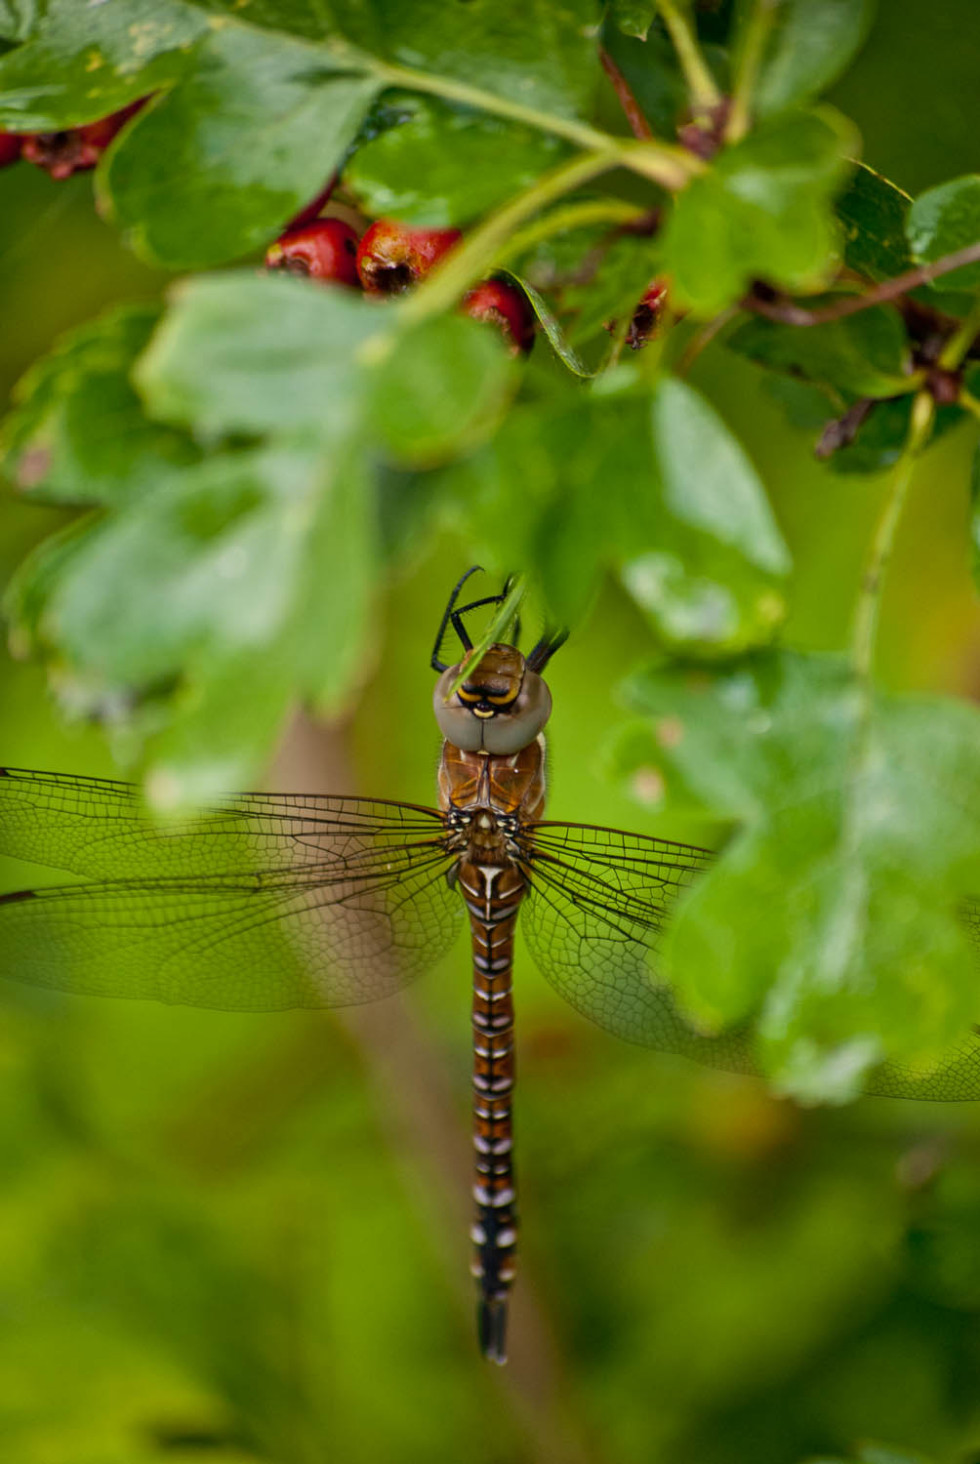 Migrant Hawker Dragonfly, Aeshna mixta